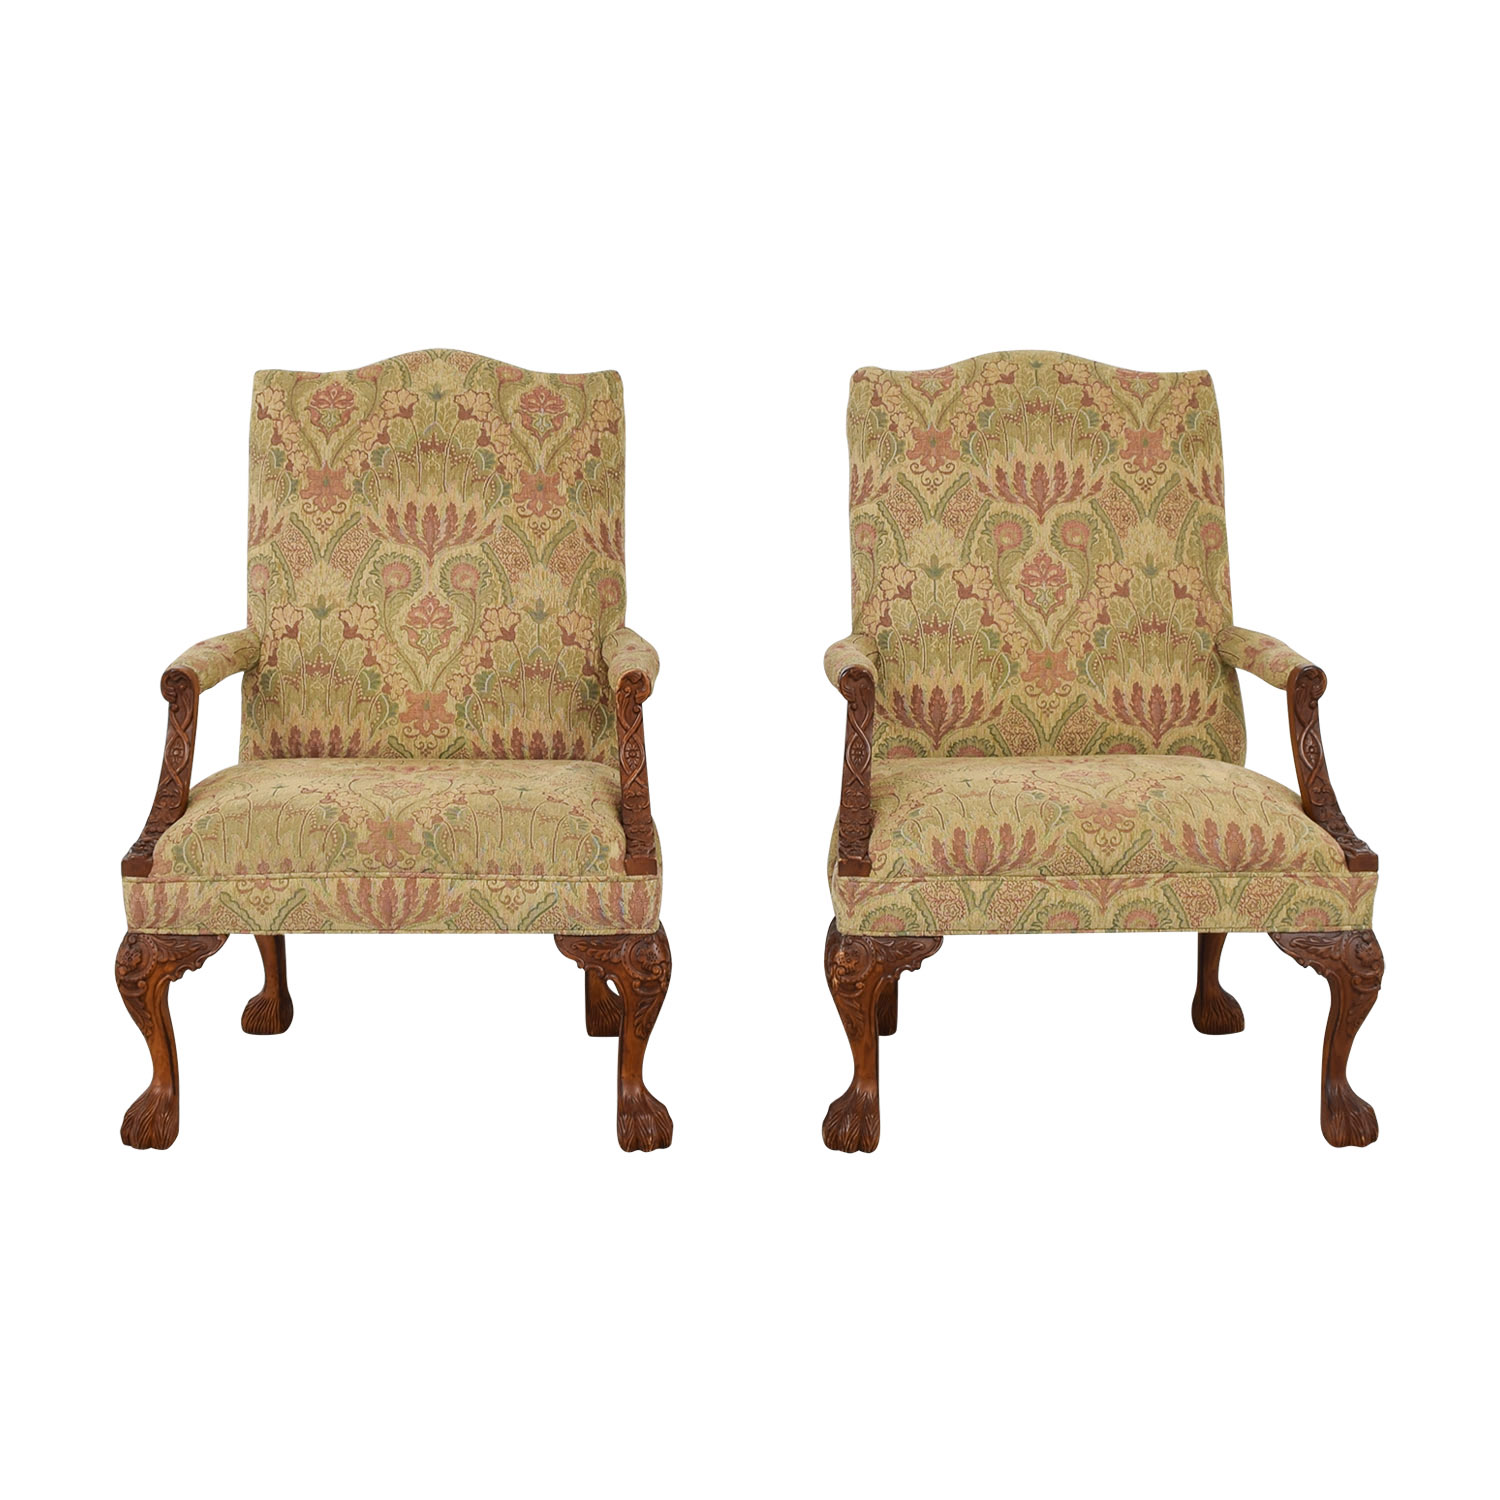 buy Sam Moore Tibetan Tapestry Old World Finish Carved Wood Chairs Sam Moore Accent Chairs